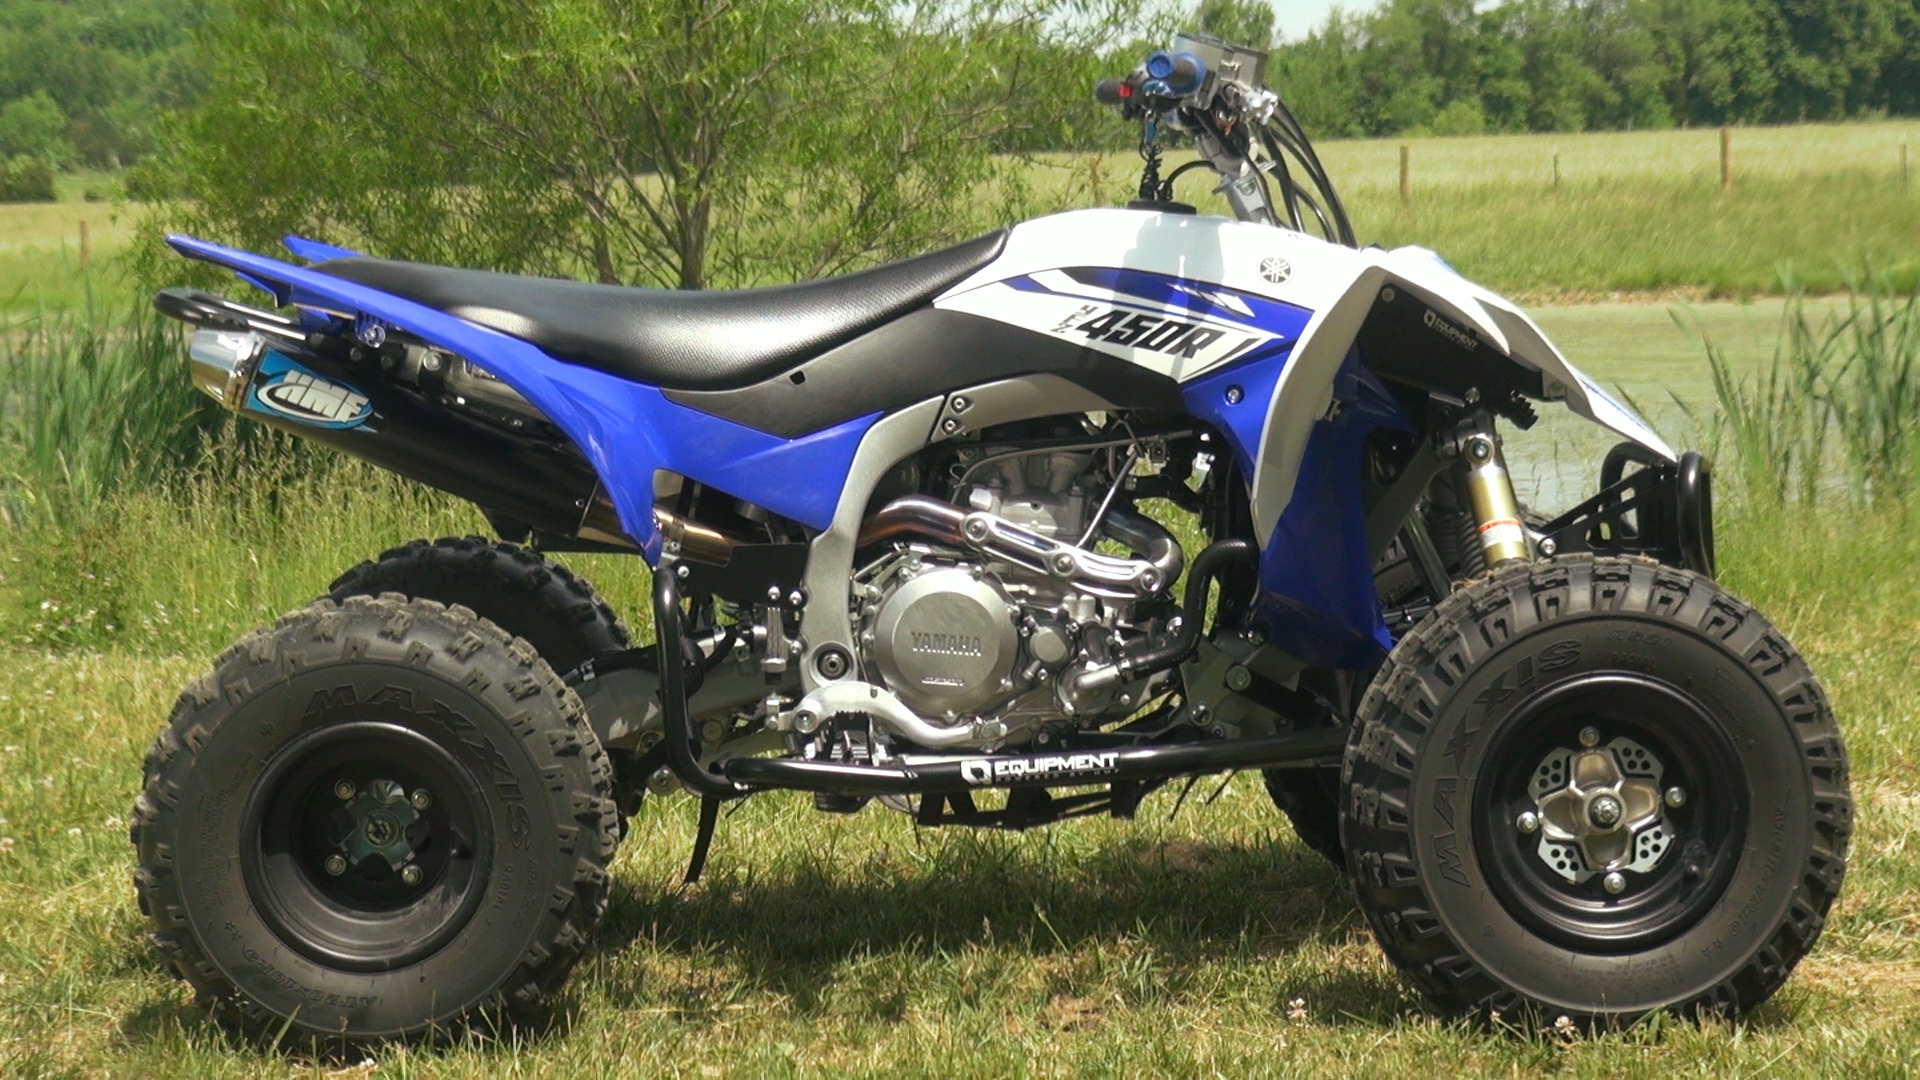 HMF, YFZ450R, Competition Series Exhaust and Fuel Optimizer